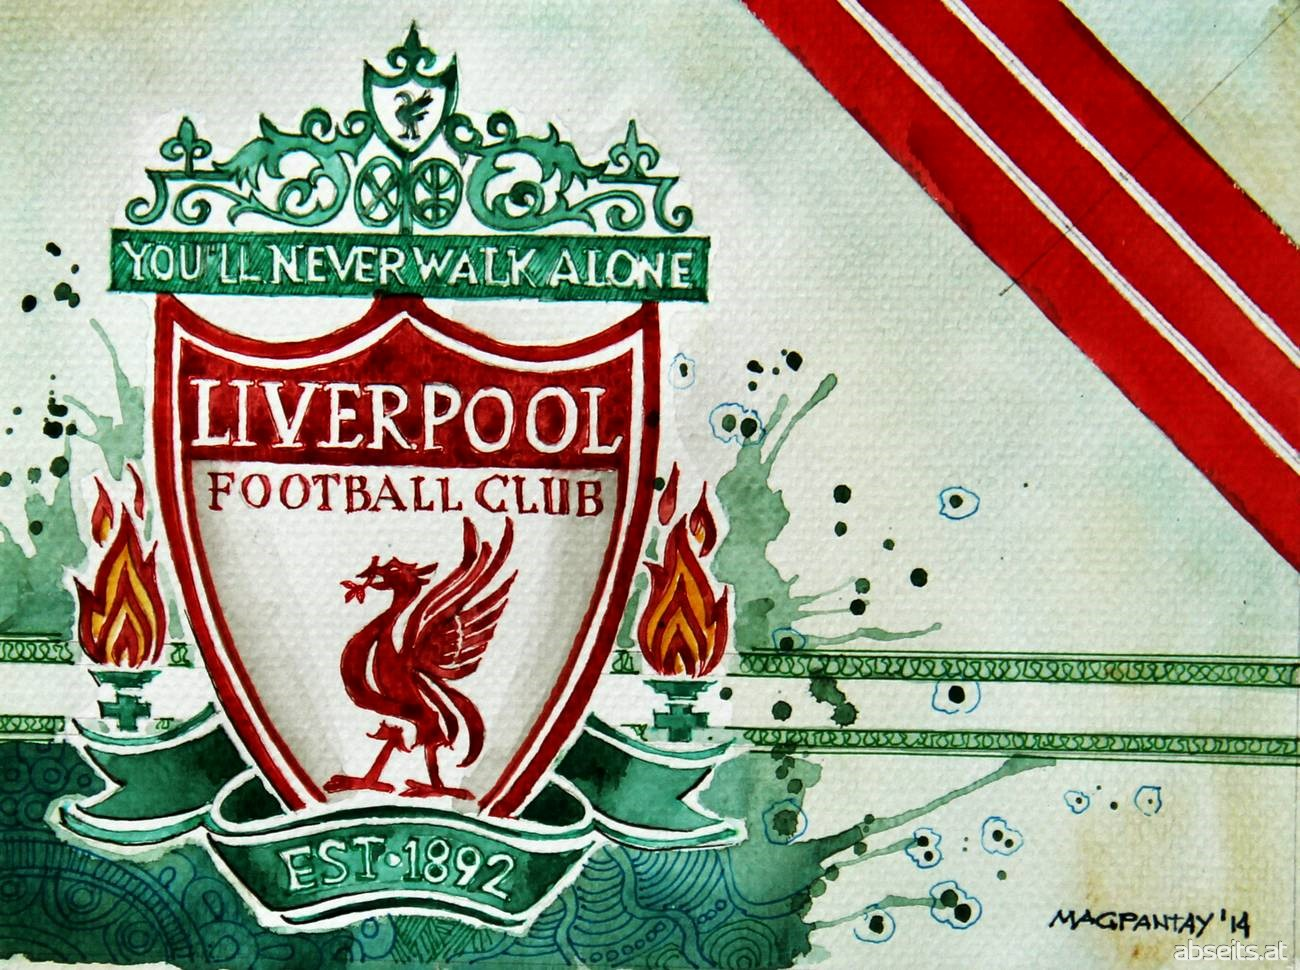 FC Liverpool - Wappen mit Farben_abseits.at